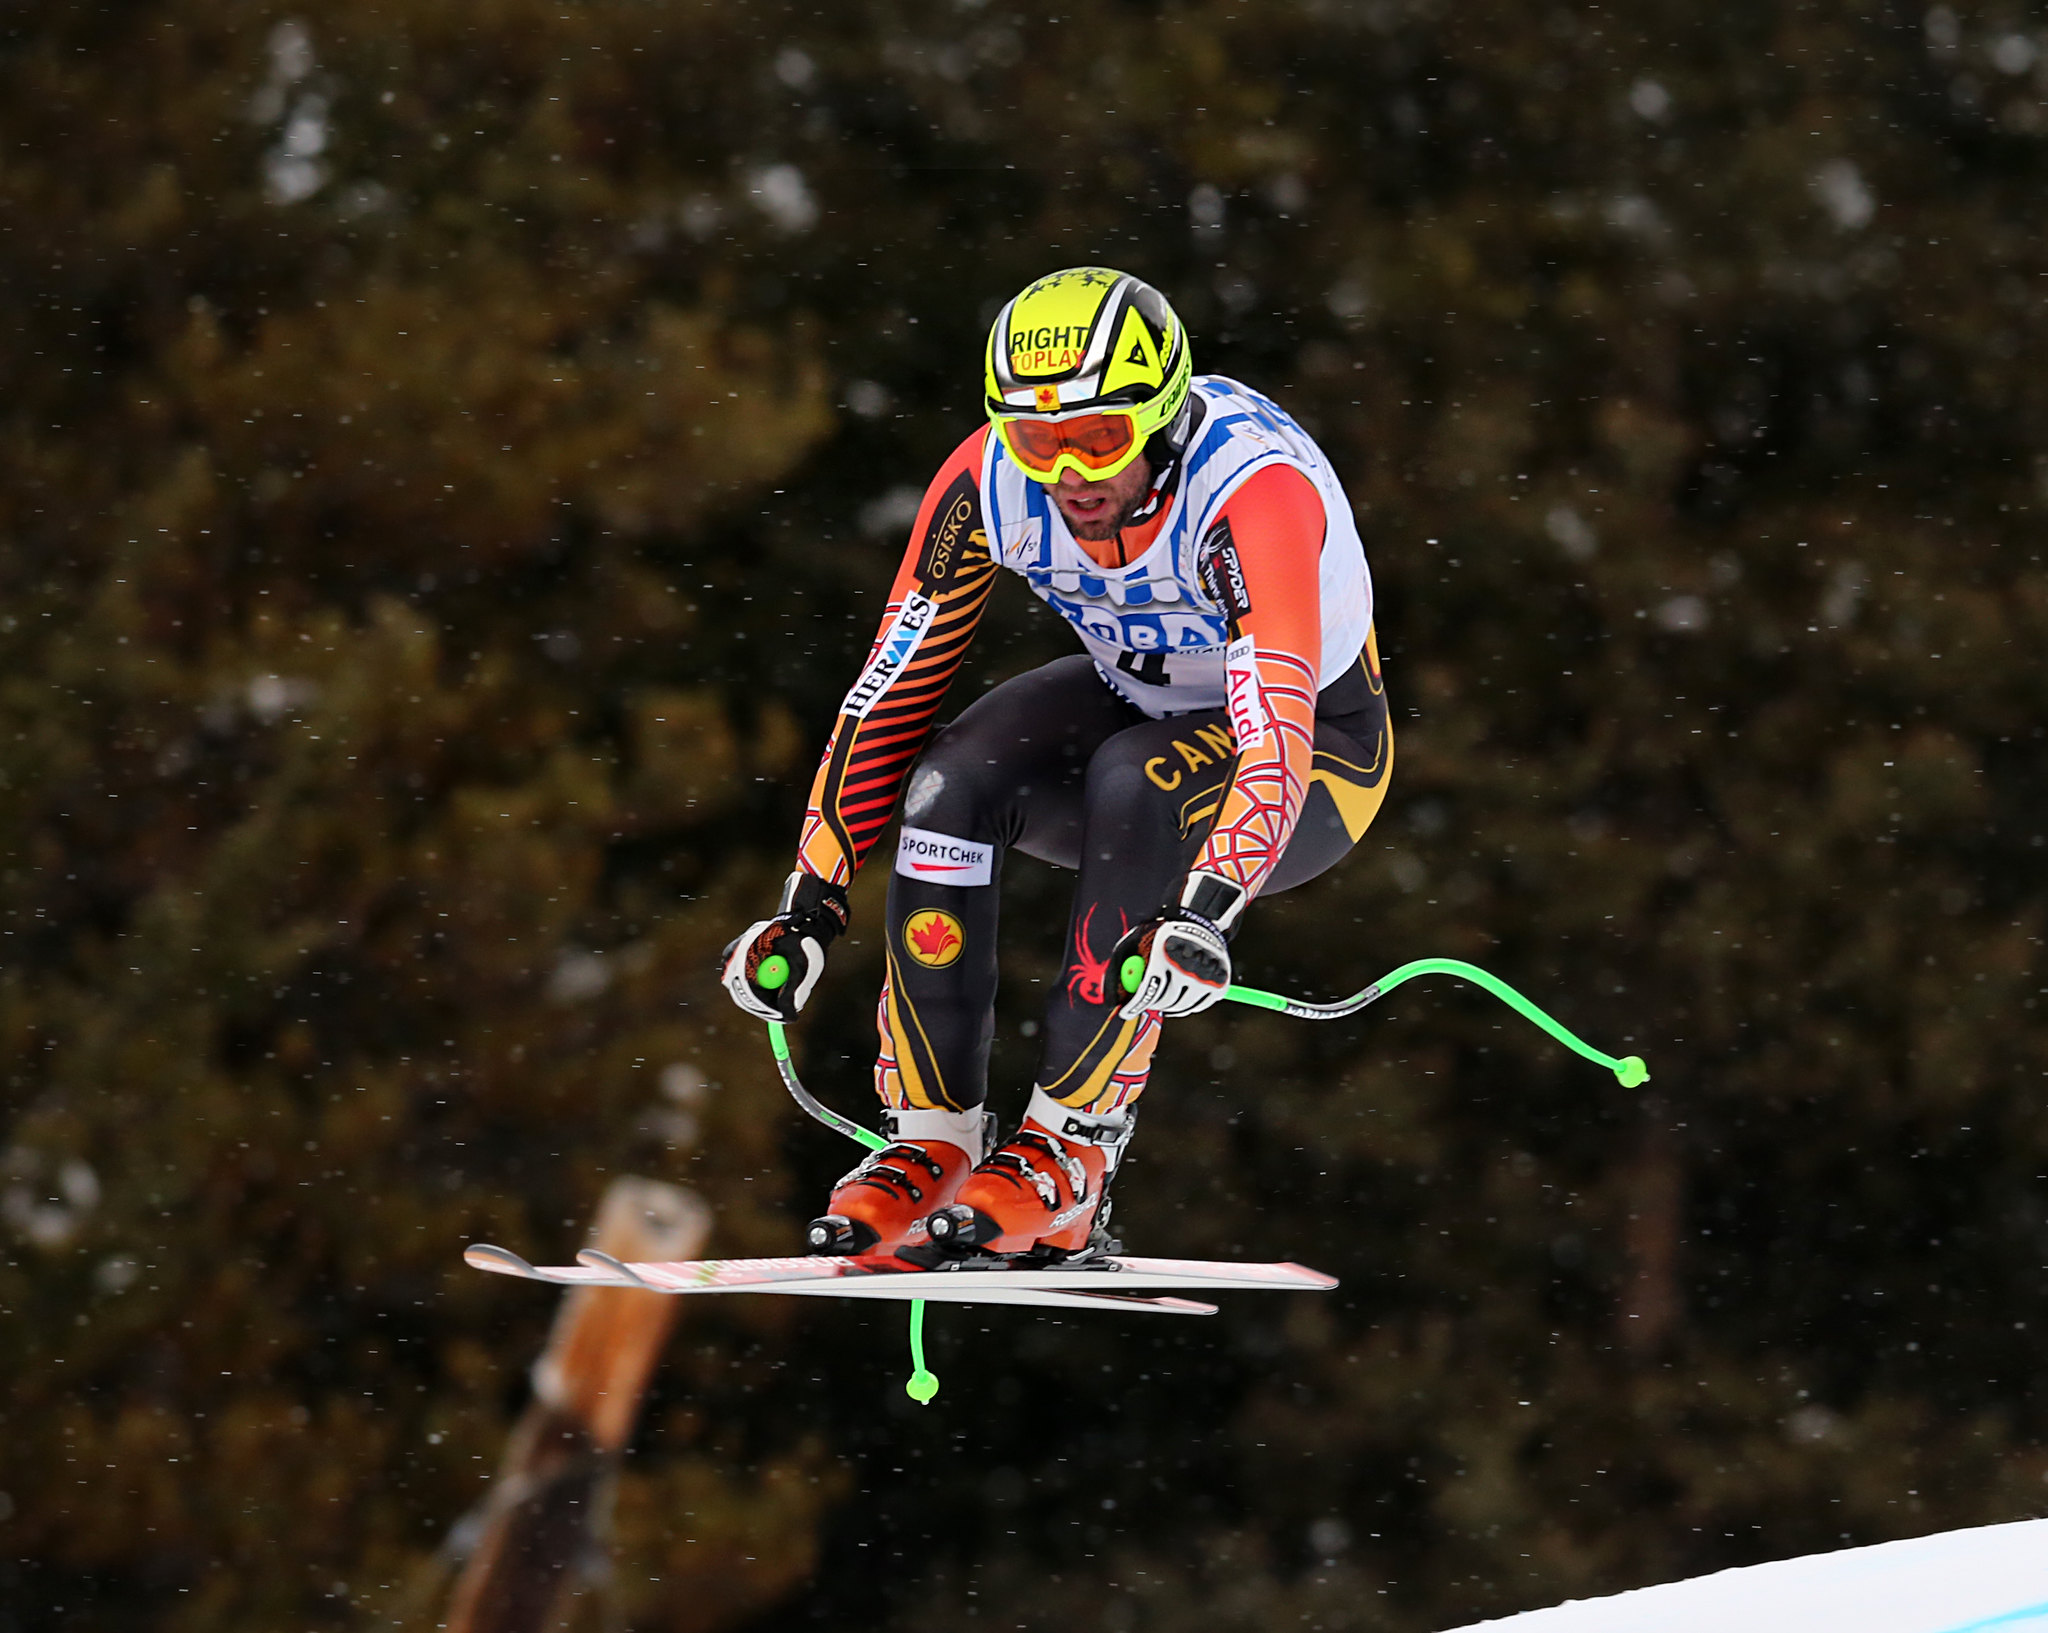 Manny in action during the downhill at the FIS Alpine World Cup in Lake Louise, CAN